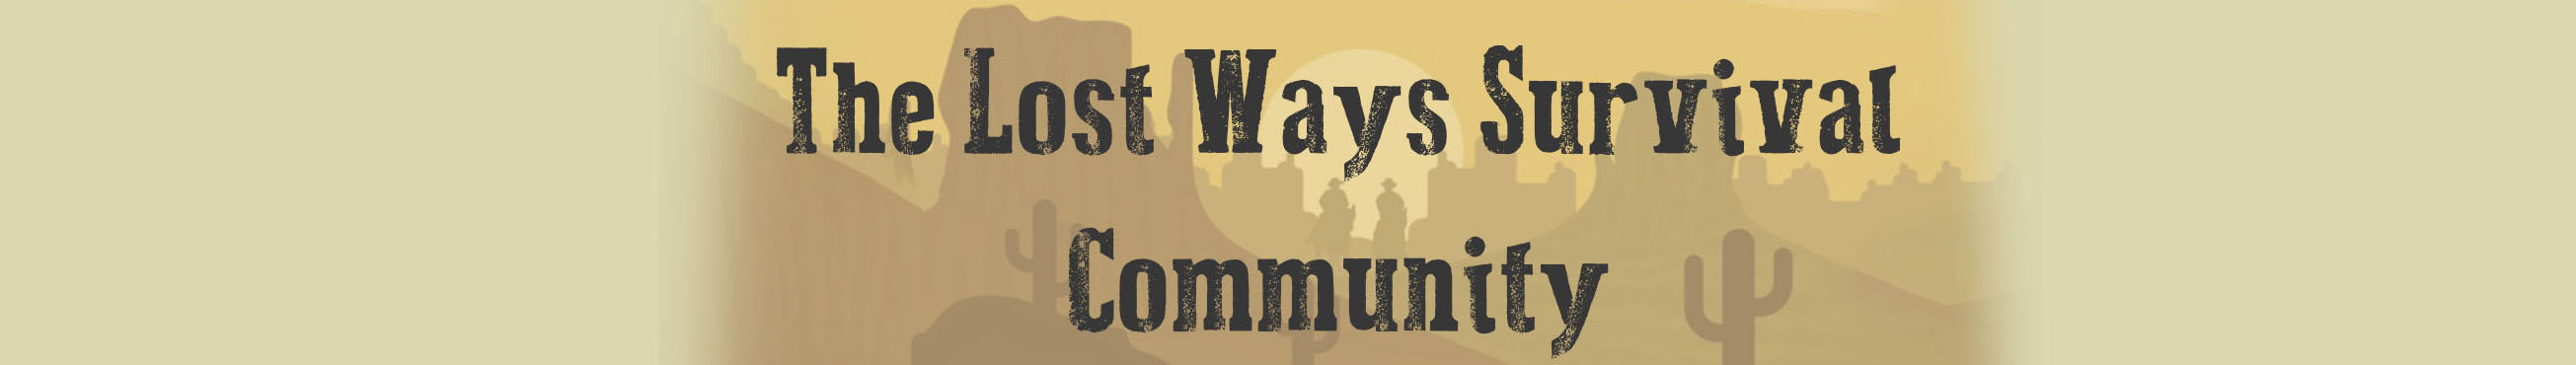 LostWays Community